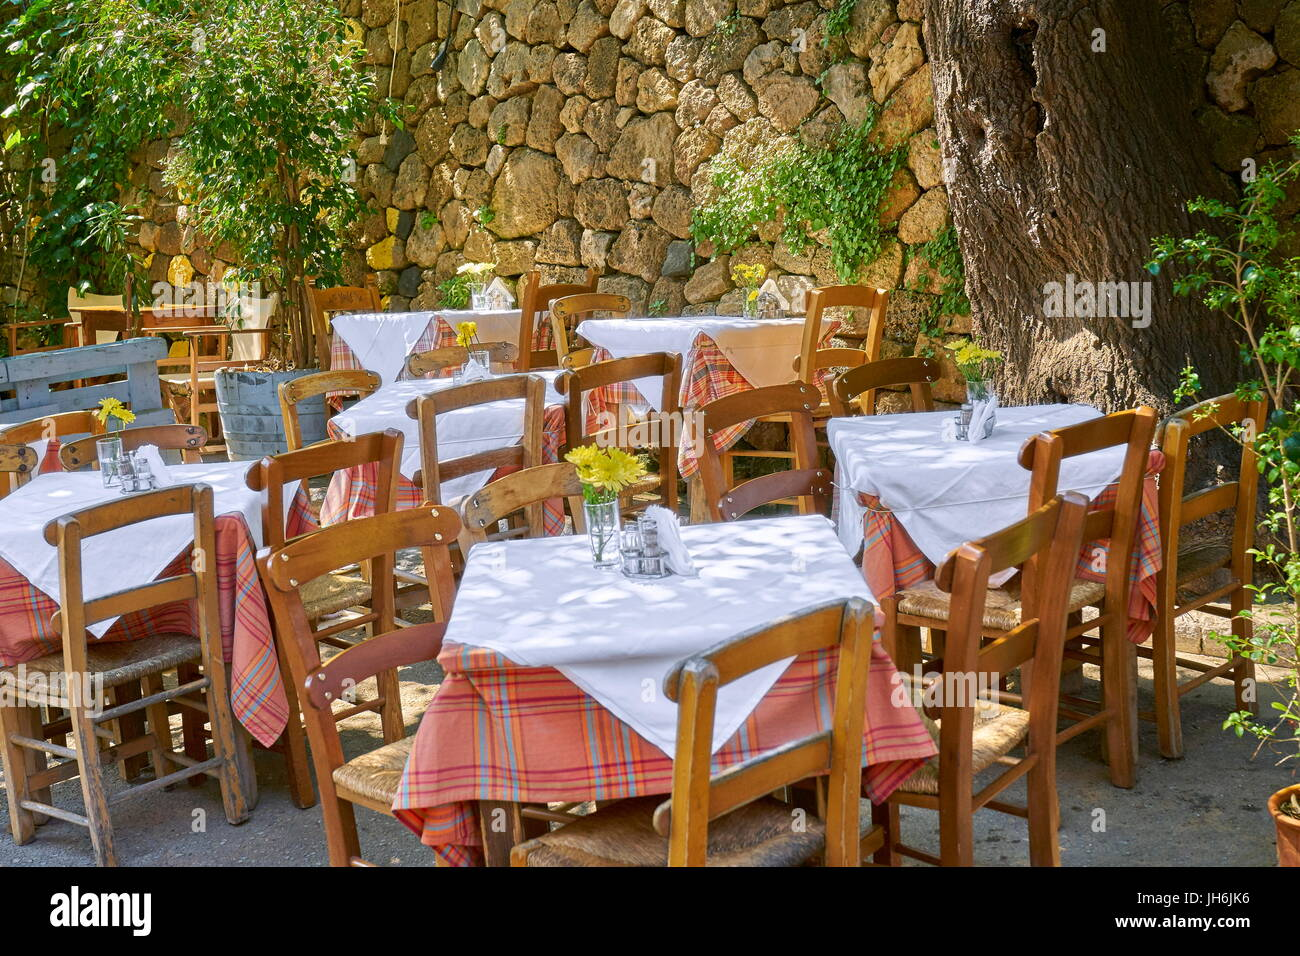 Restaurant at Chania Old Town, Crete Island, Greece - Stock Image